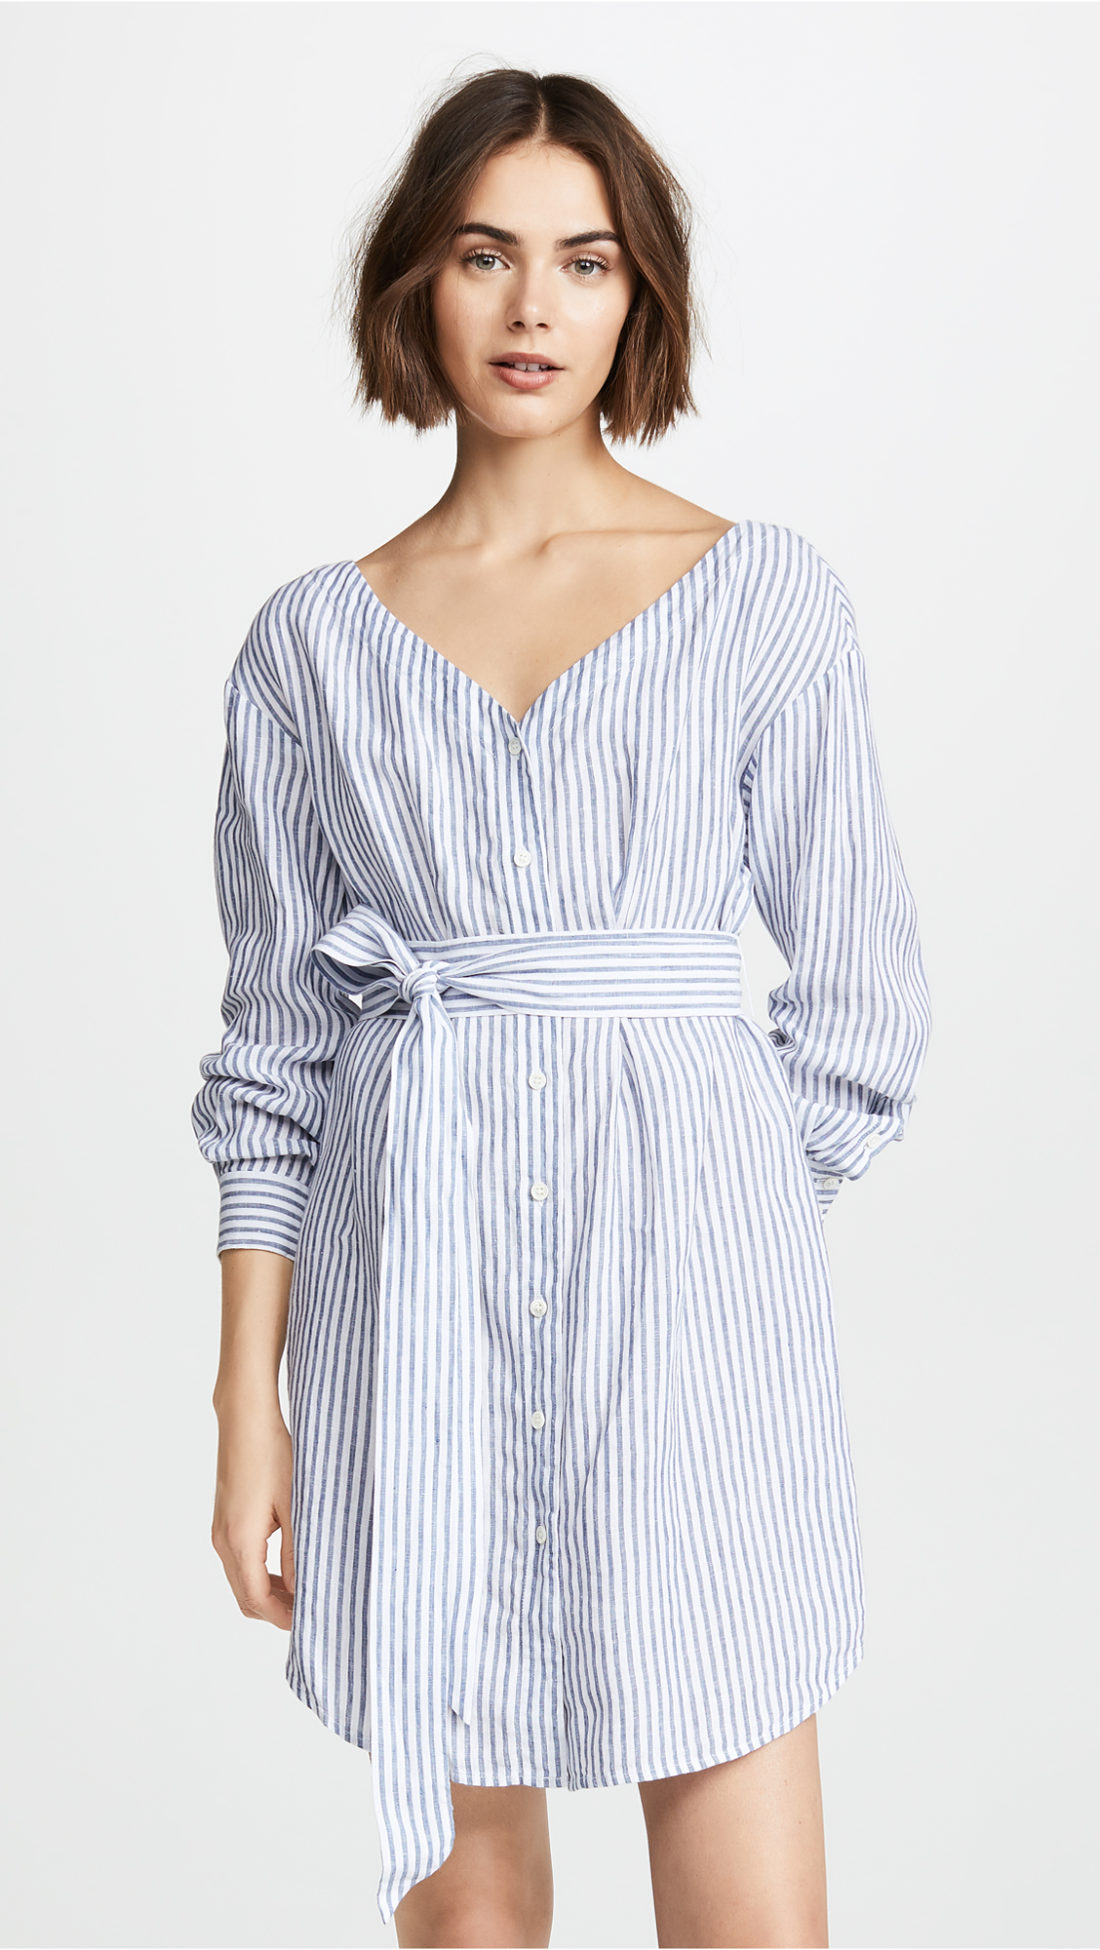 FRAME Belted Poplin Dress  - Shopbop sale recommendations by popular North Carolina fashion blogger Glitter, Inc.